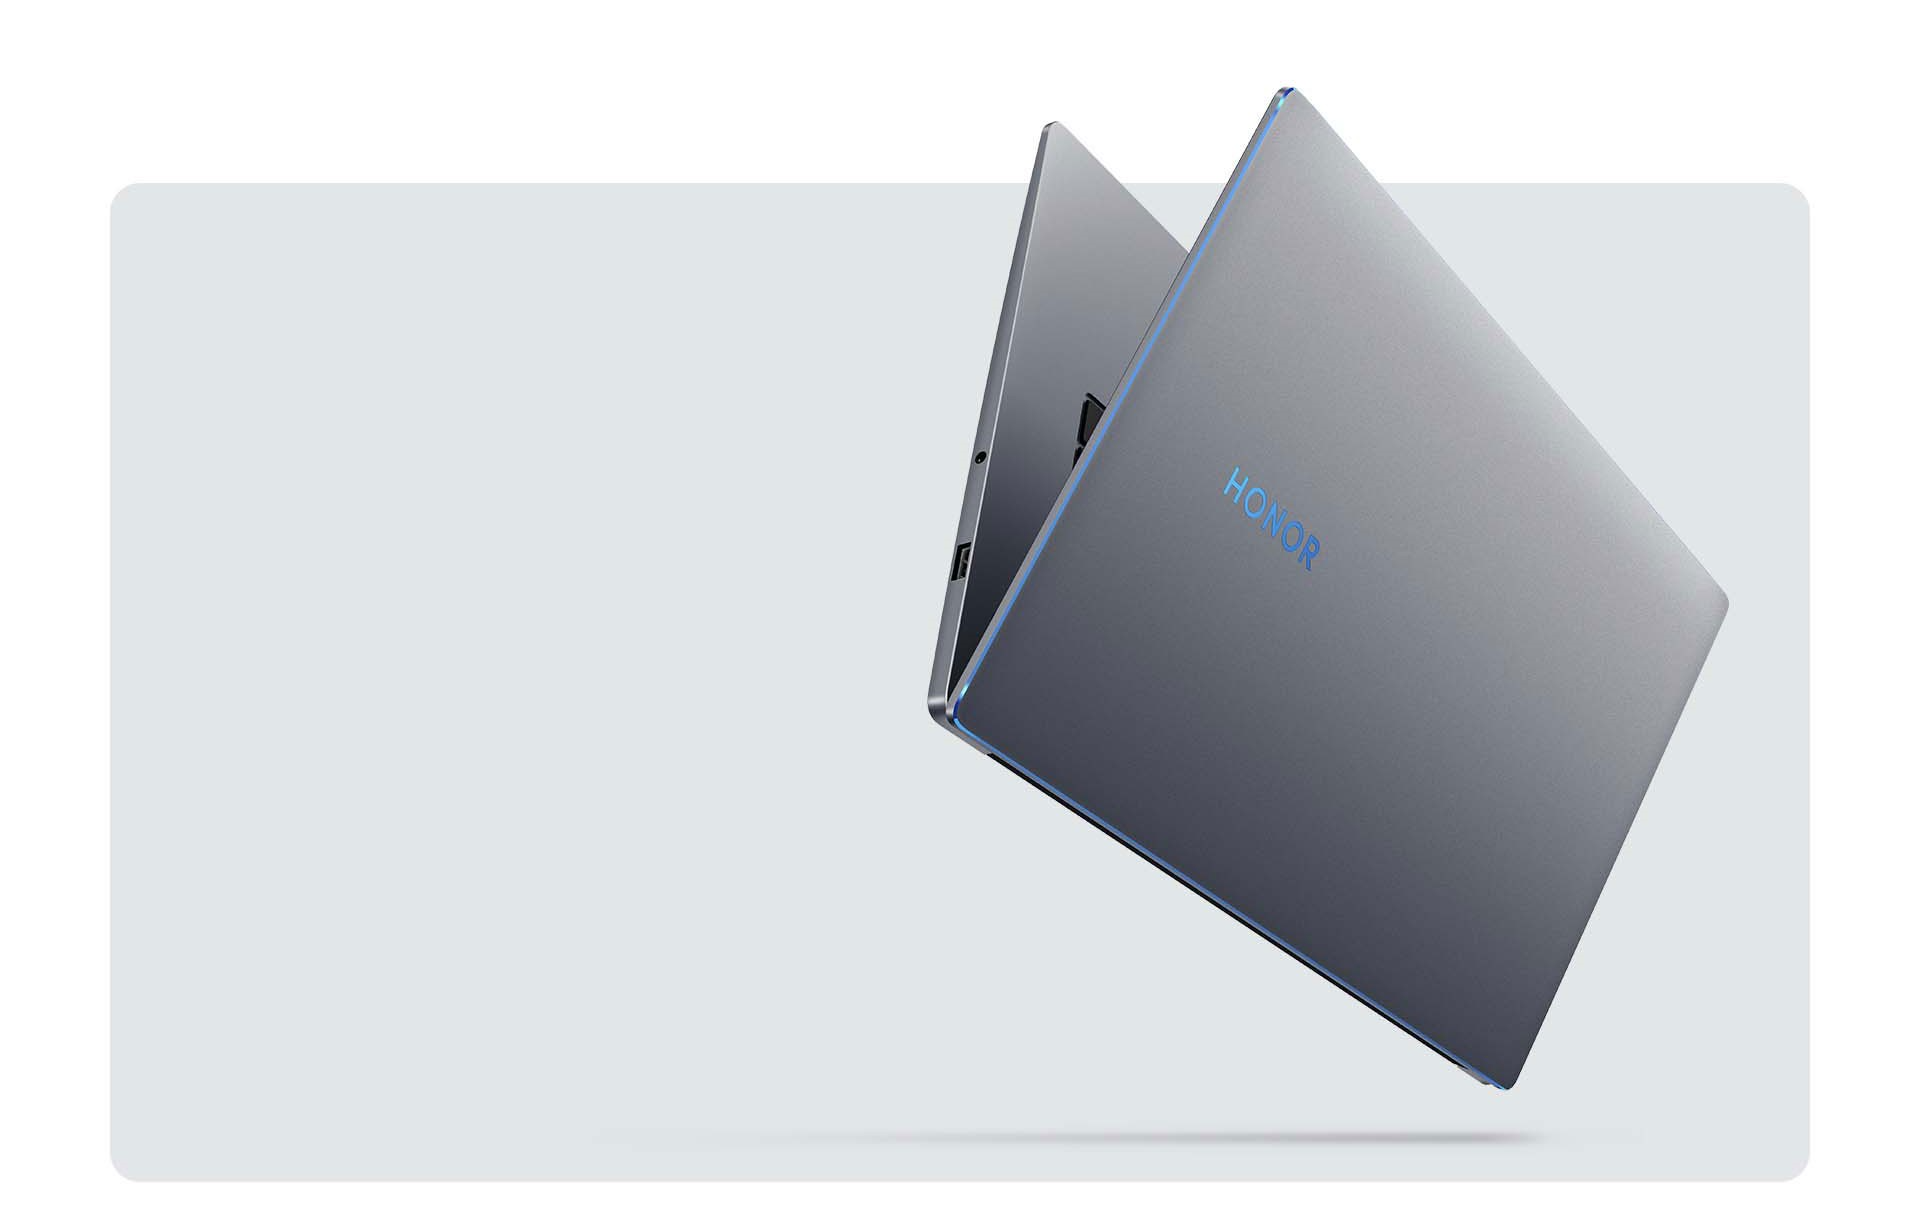 HONOR MagicBook 14 Slim and Light Body